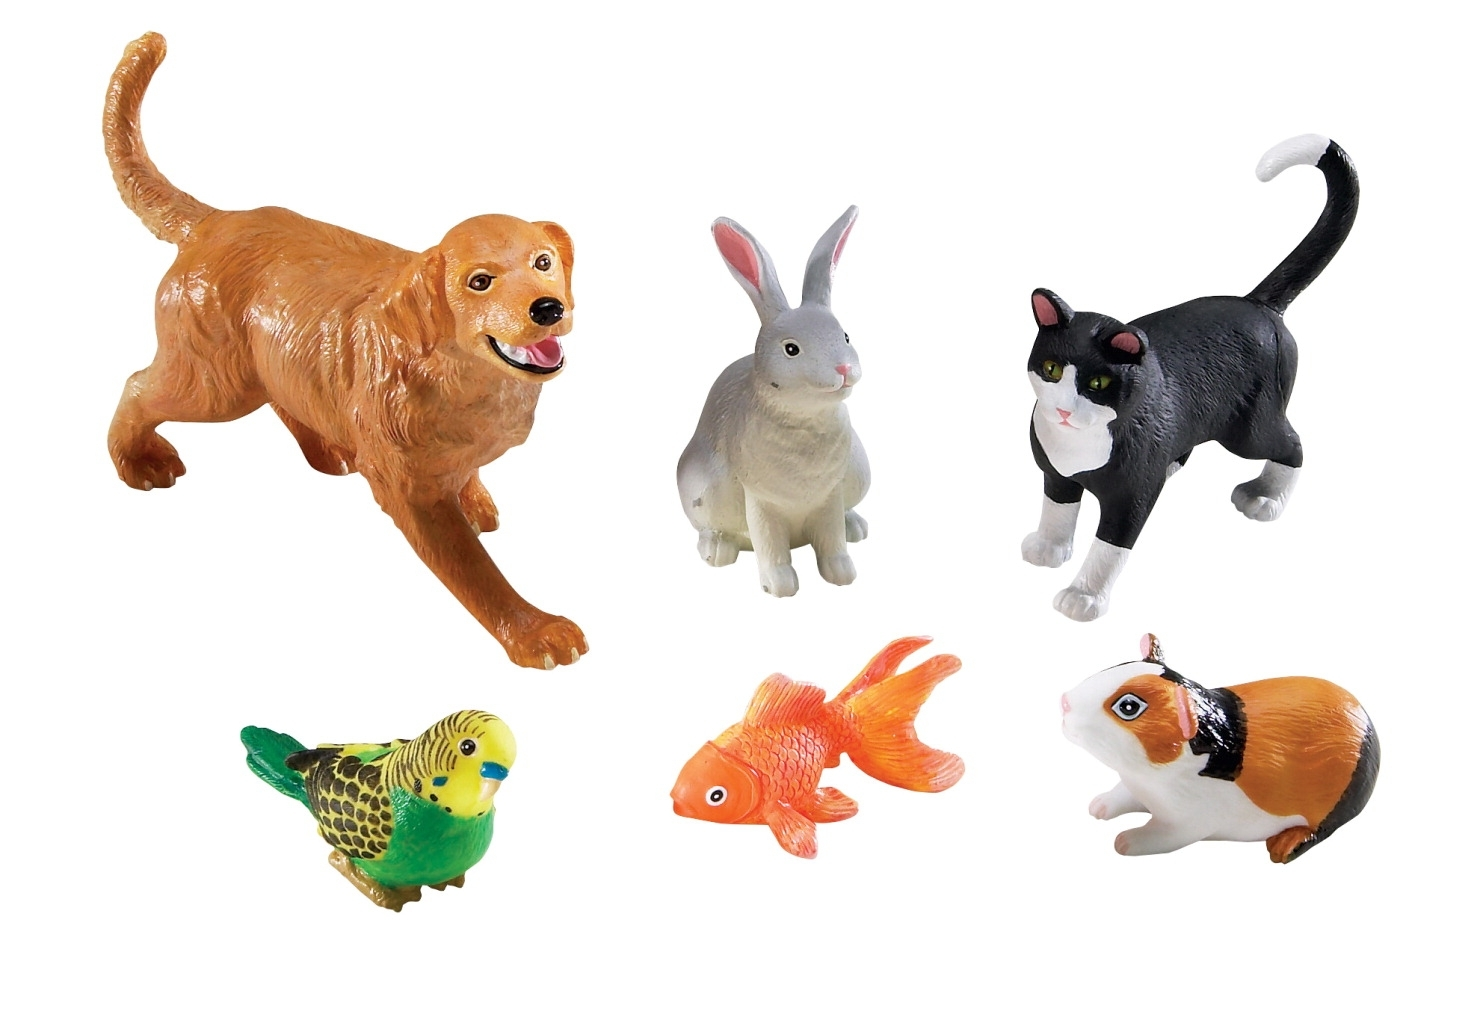 Learning: Supplies Dramatic Play Best Toys For Birthdays Puppet Bear Cub Jumbo Stuffed Animals - 205900 - Learning Resources Assorted Jumbo Pets; Set Of 6 205900